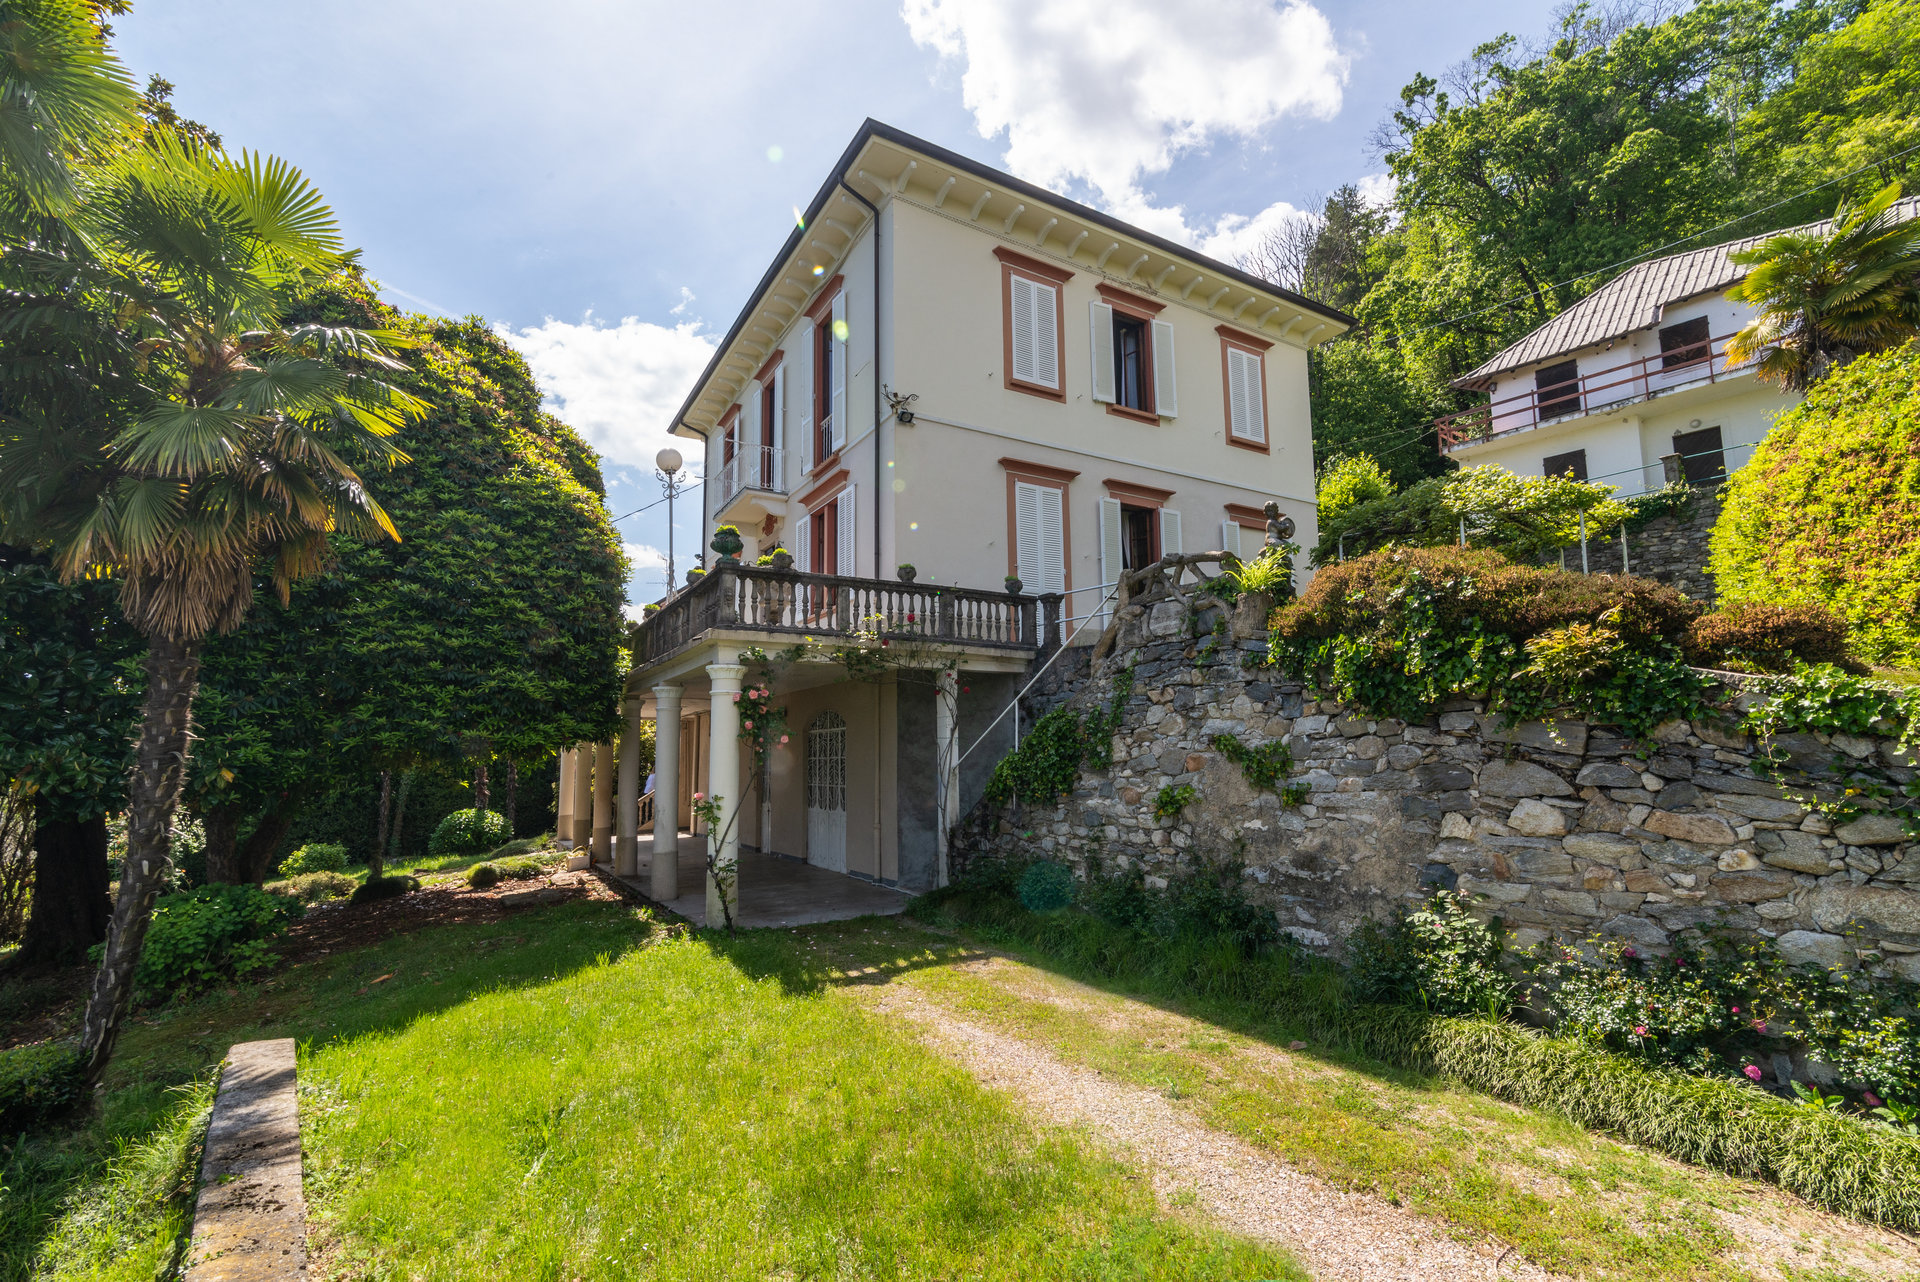 Historic property for sale on Lake Maggiore